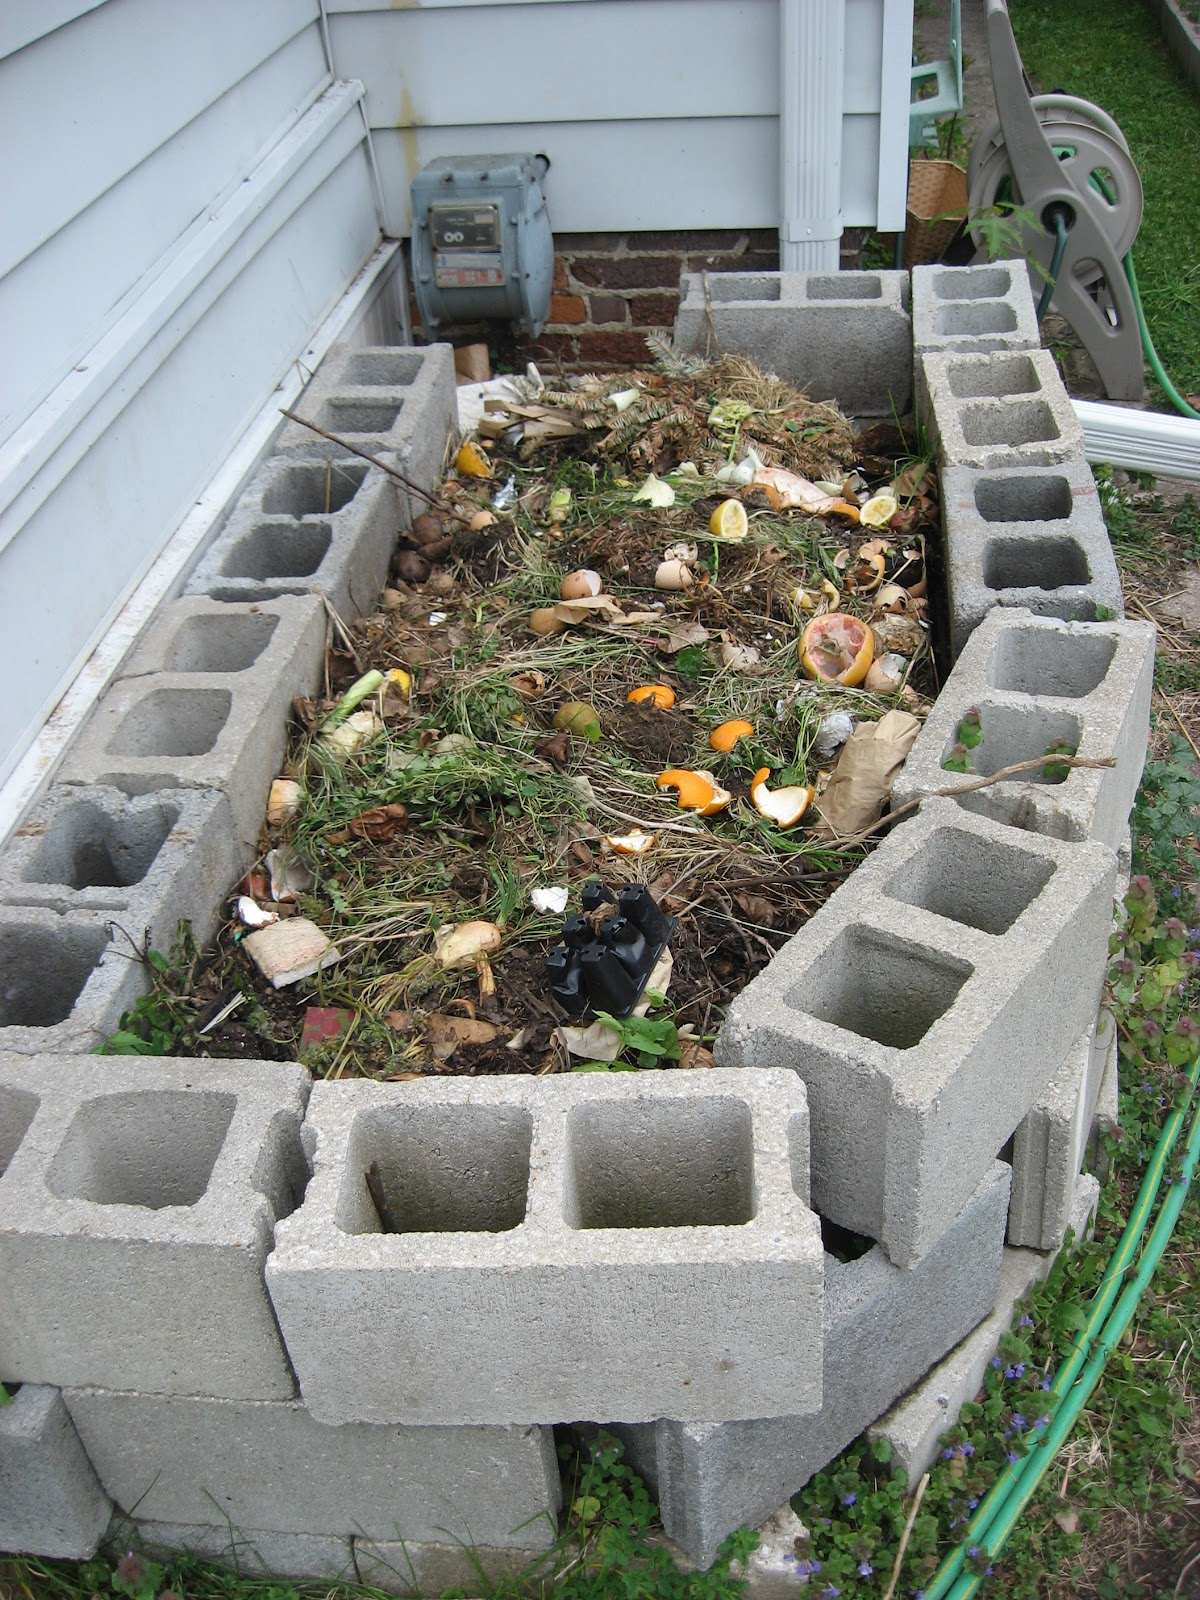 How to make a compost pile in your backyard - Make Your Own Compost Bin Out Of Concrete Blocks